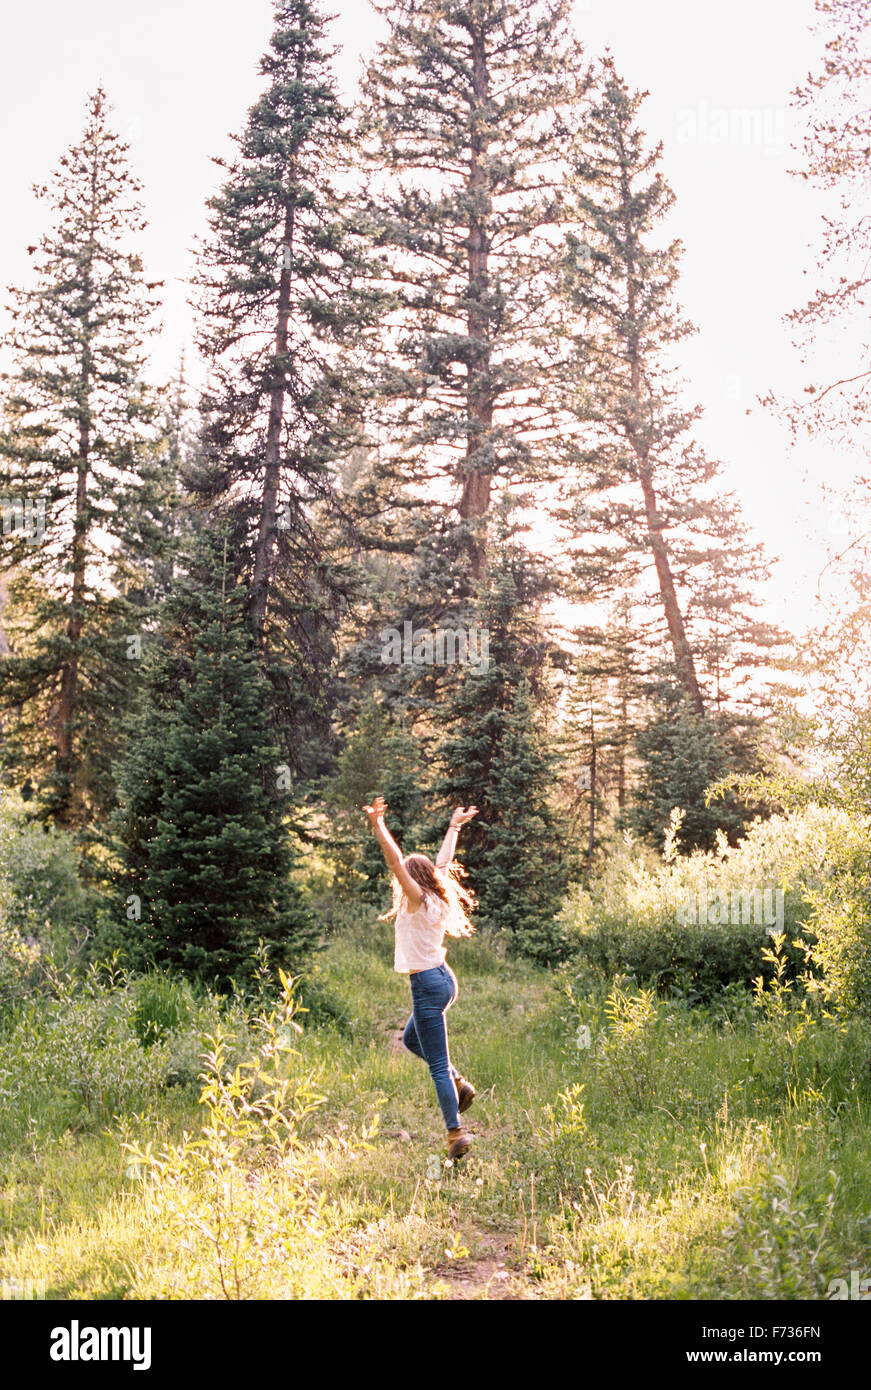 Woman jumping with joy in a sunlit forest. - Stock Image